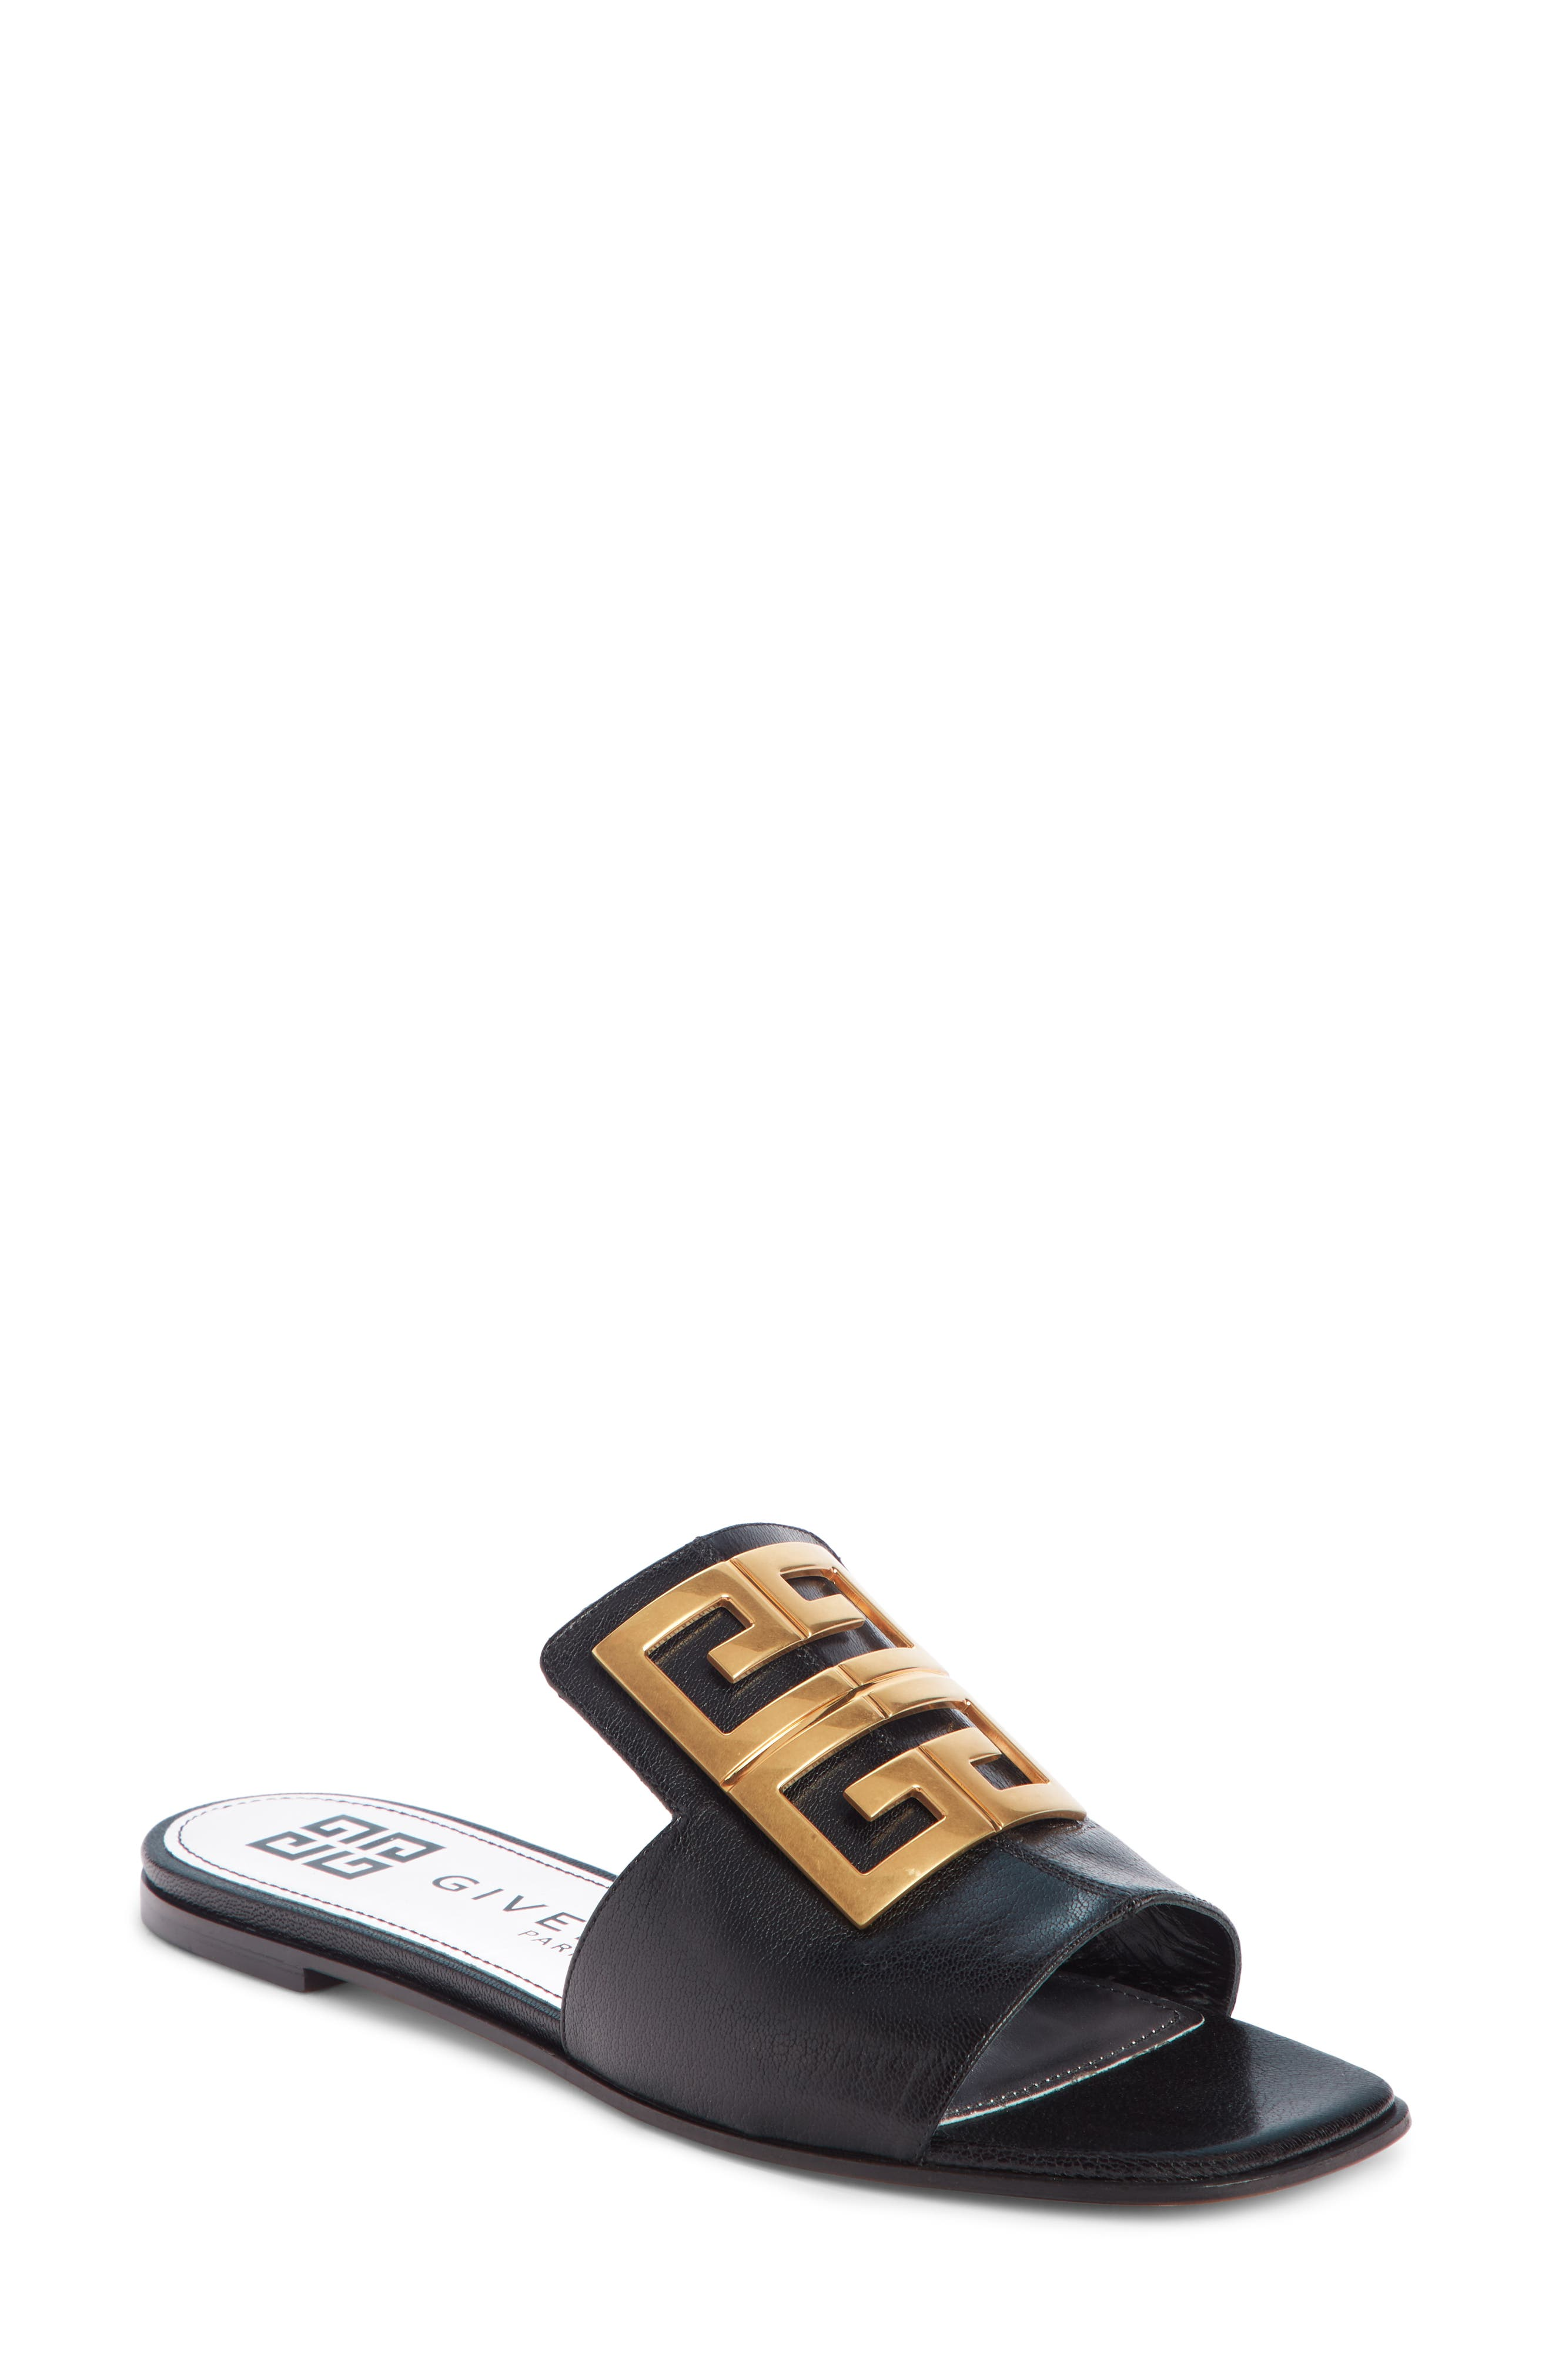 The classic 4G emblem makes a comeback, brilliantly highlighting the extended topline of this chic slide sandal. Style Name: Givenchy 4G Logo Slide Sandal (Women). Style Number: 5855790. Available in stores.